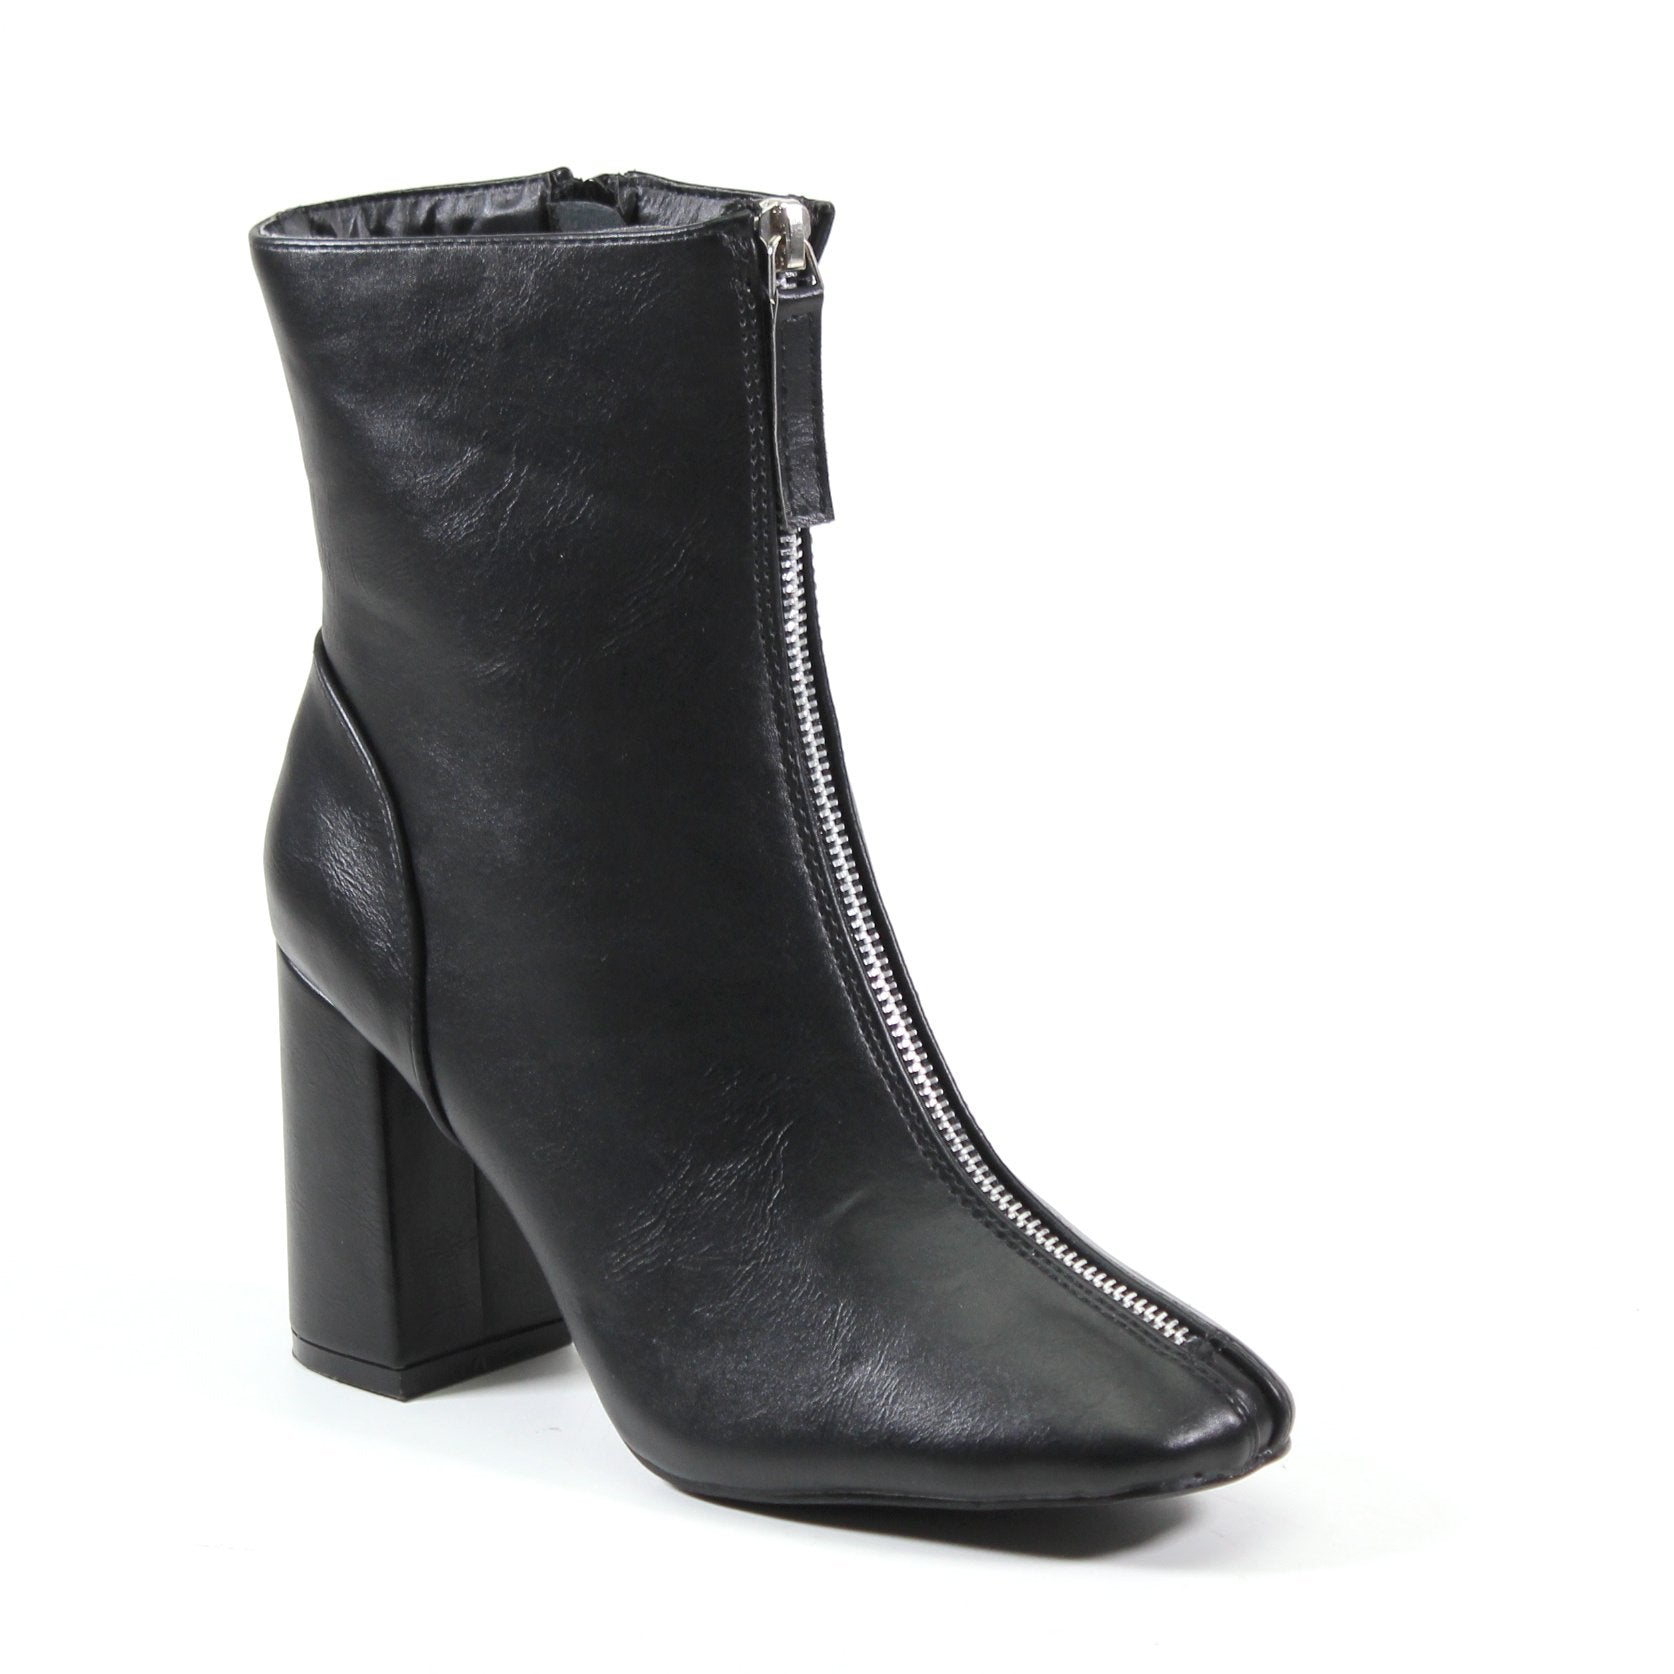 A mid-length bootie featuring a decorative faux front zip that starts from the toe and extends to the top line of this vegan leather upper. A self-covered block heel and functional inside zip for easy entry.